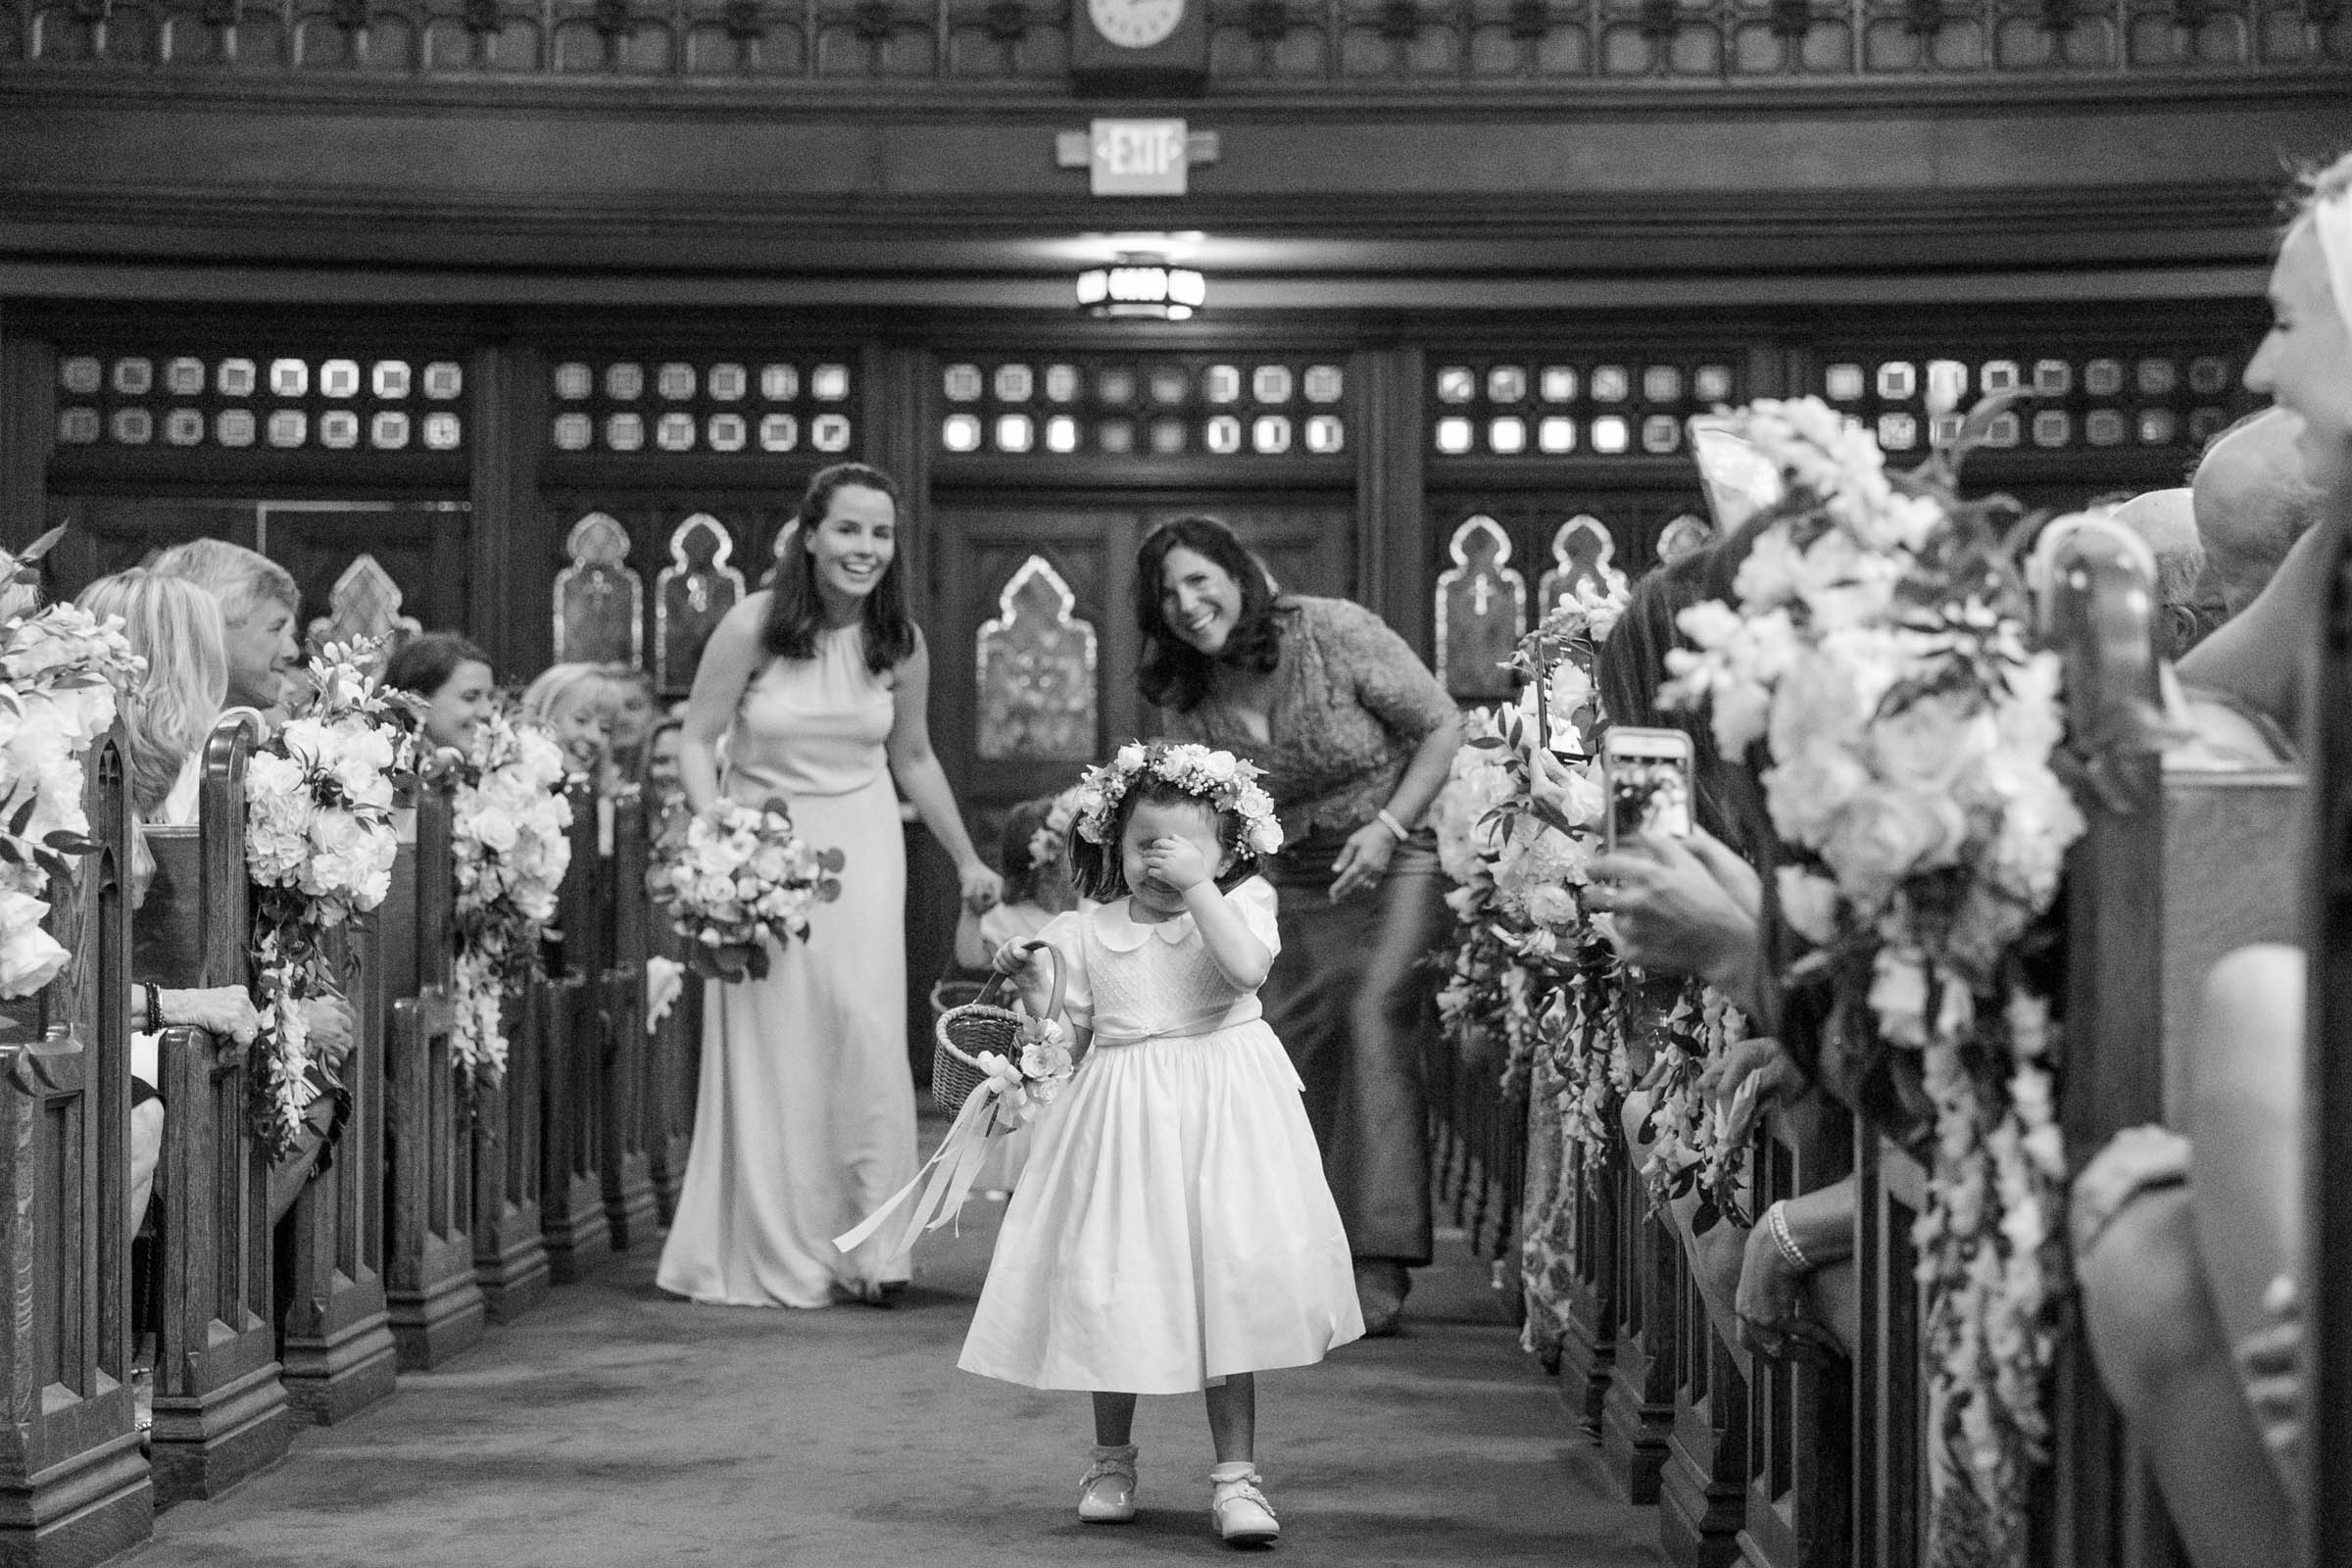 Sweet flower girl hides her face walking down aisle - photo by Dana Cubbage Weddings